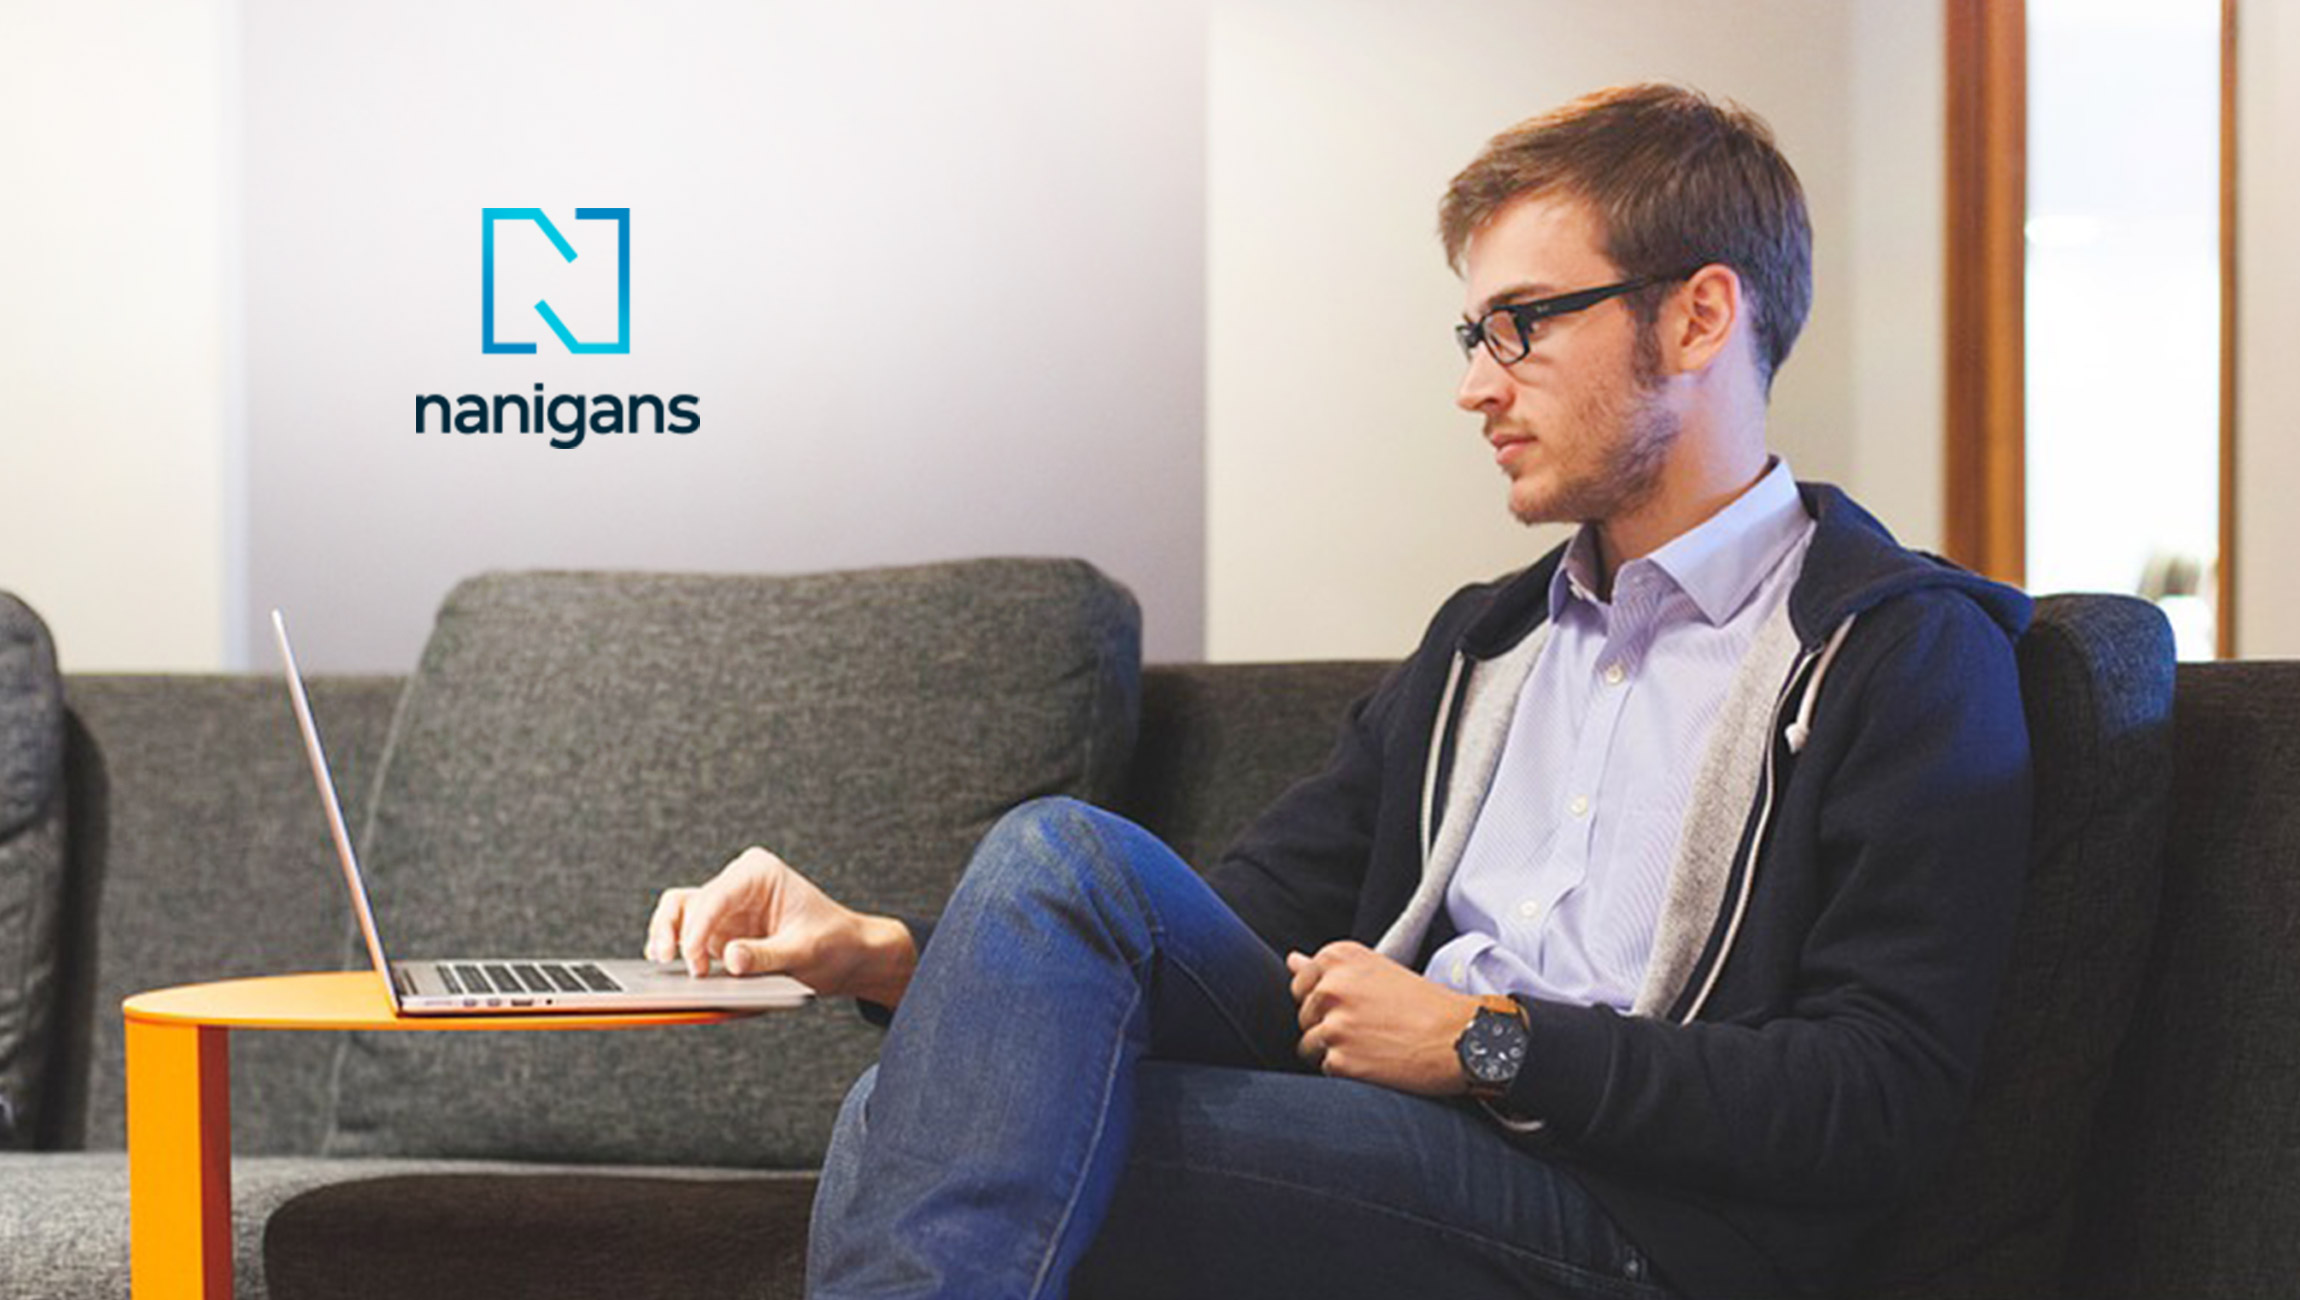 Nanigans Appoints Sales Leaders in U.S. and EMEA